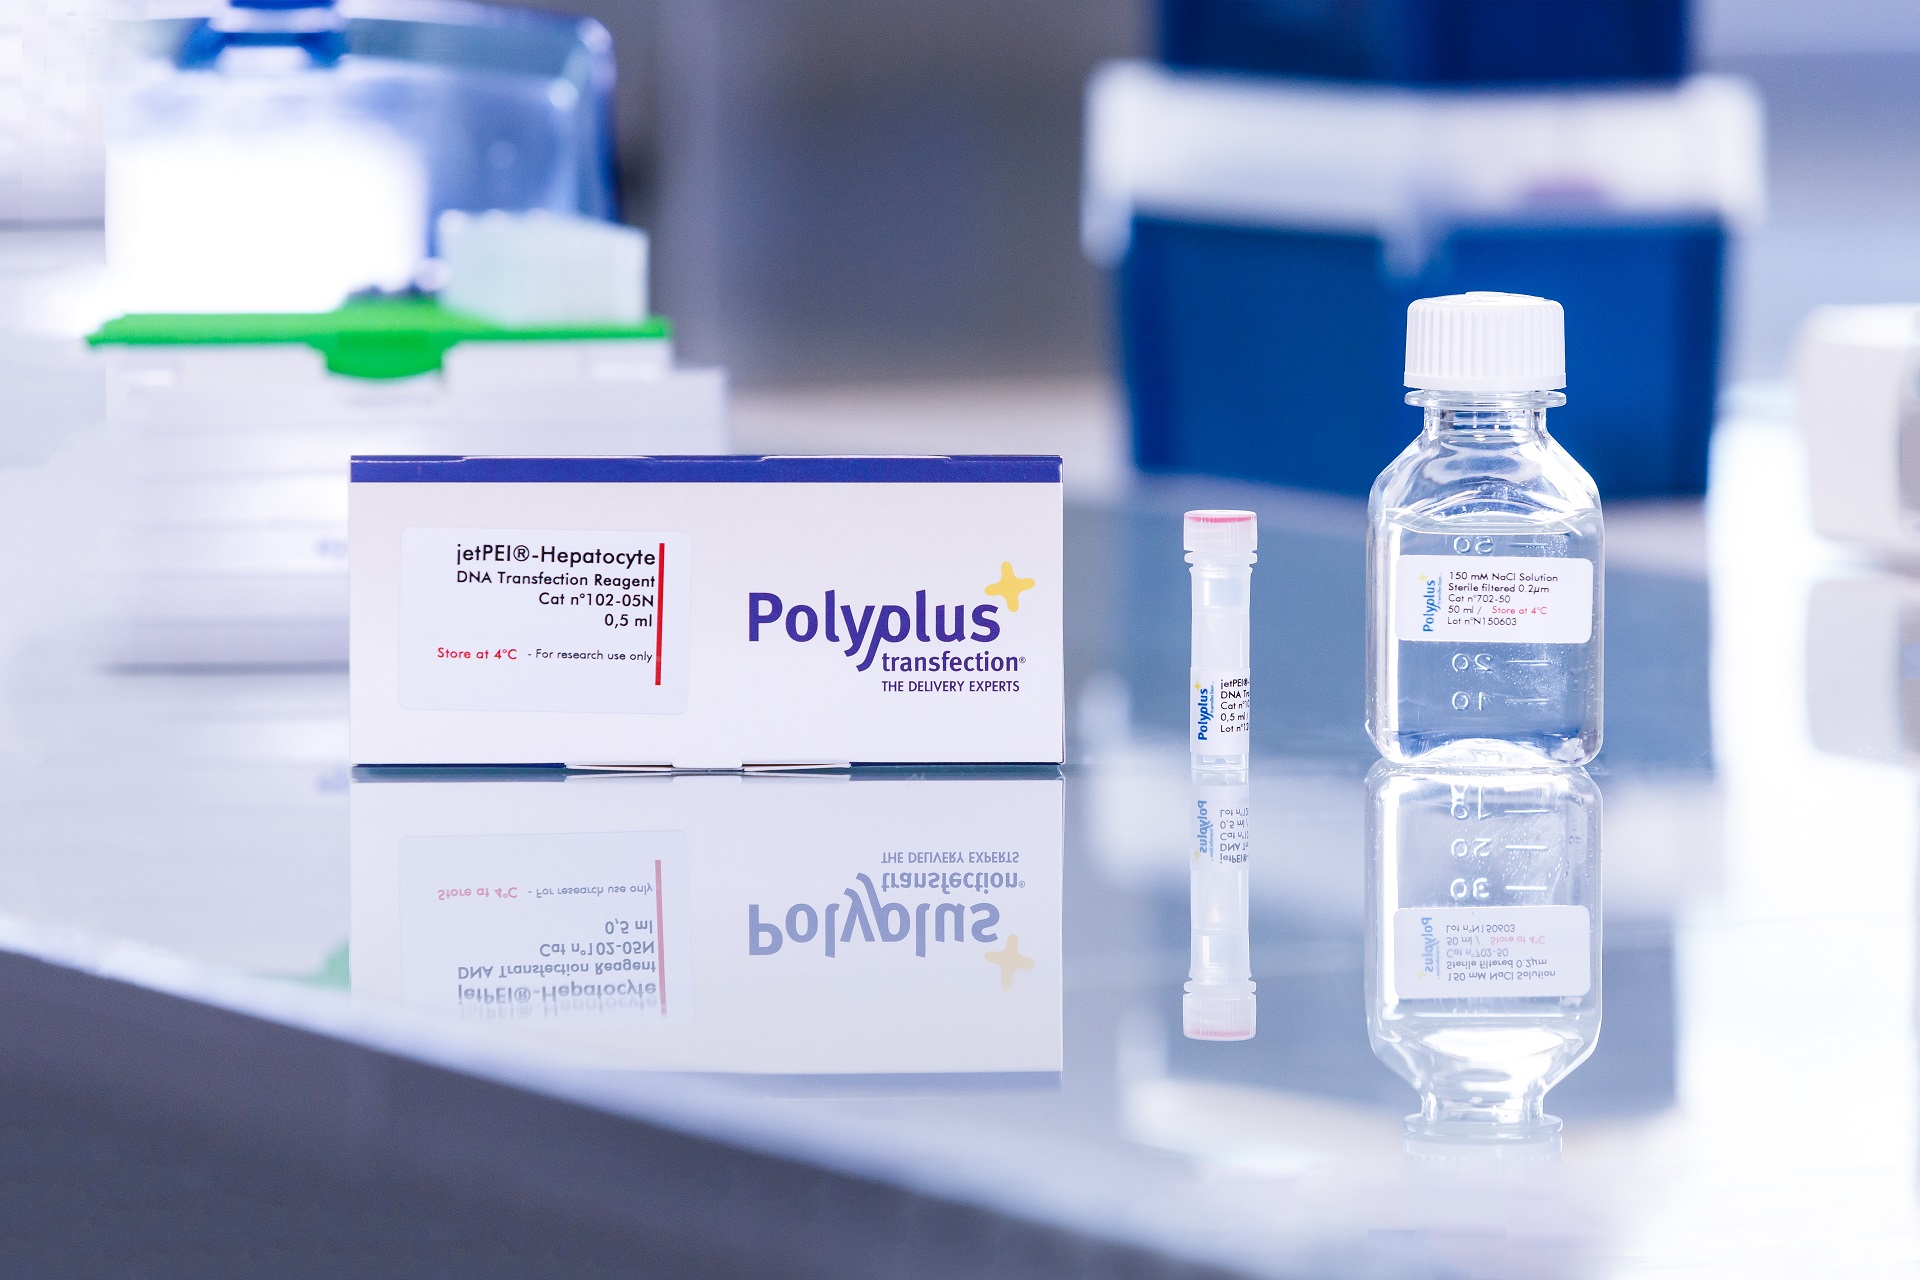 jetPEI-Hepatocyte packaging - Polyplus-transfection